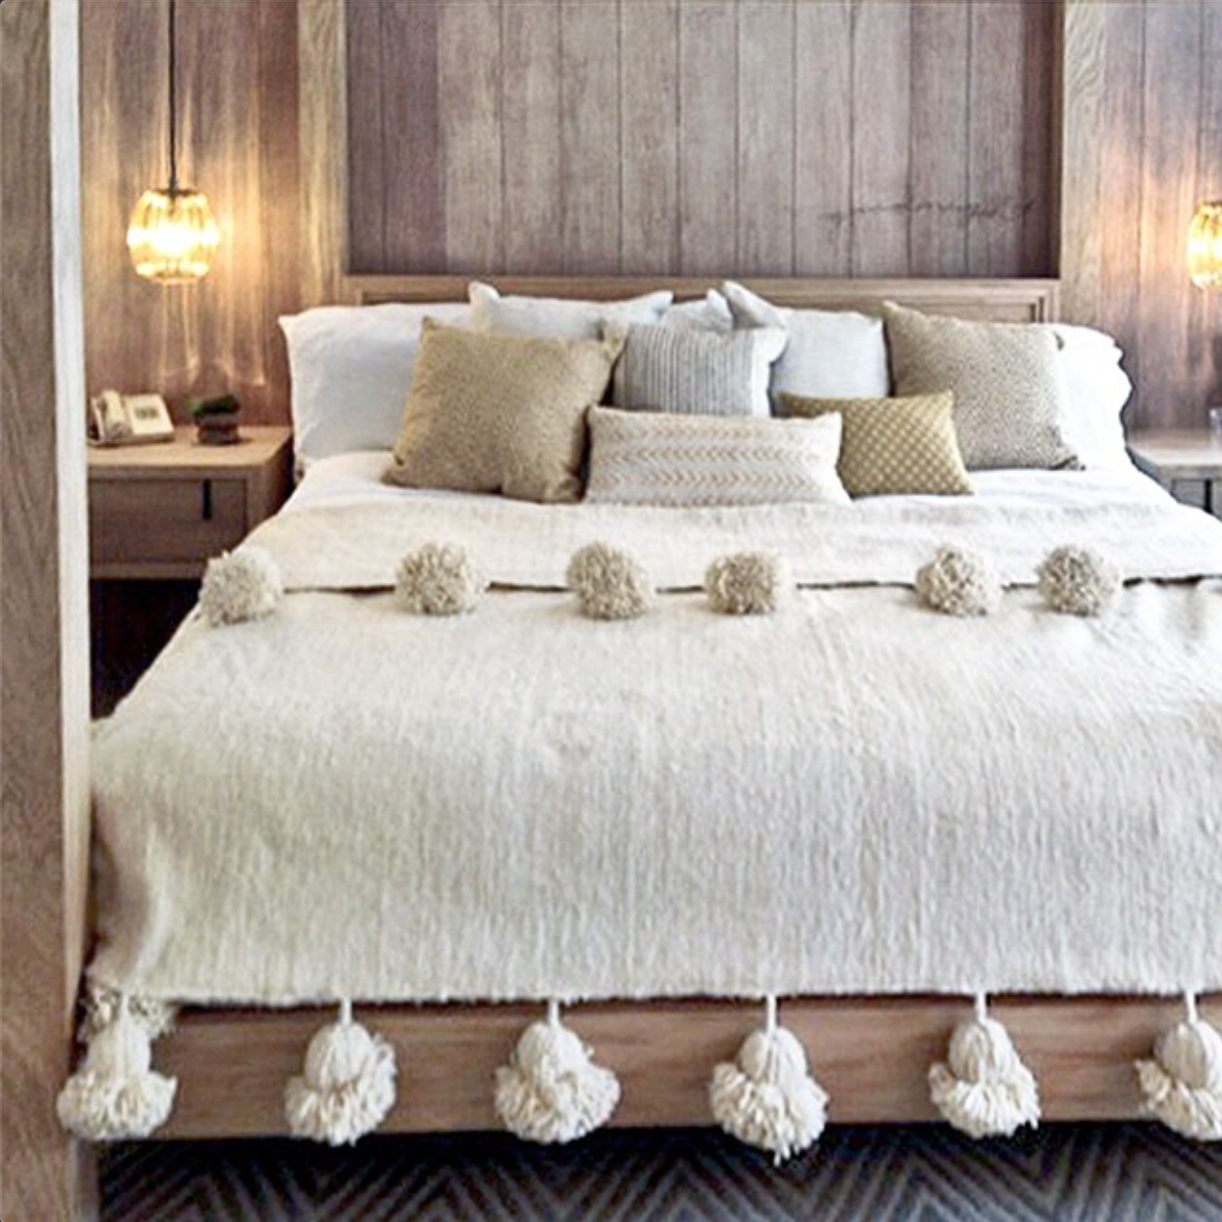 Completely new moroccan pom pom blanket from l'aviva home   Trend: A Passel of  VO66